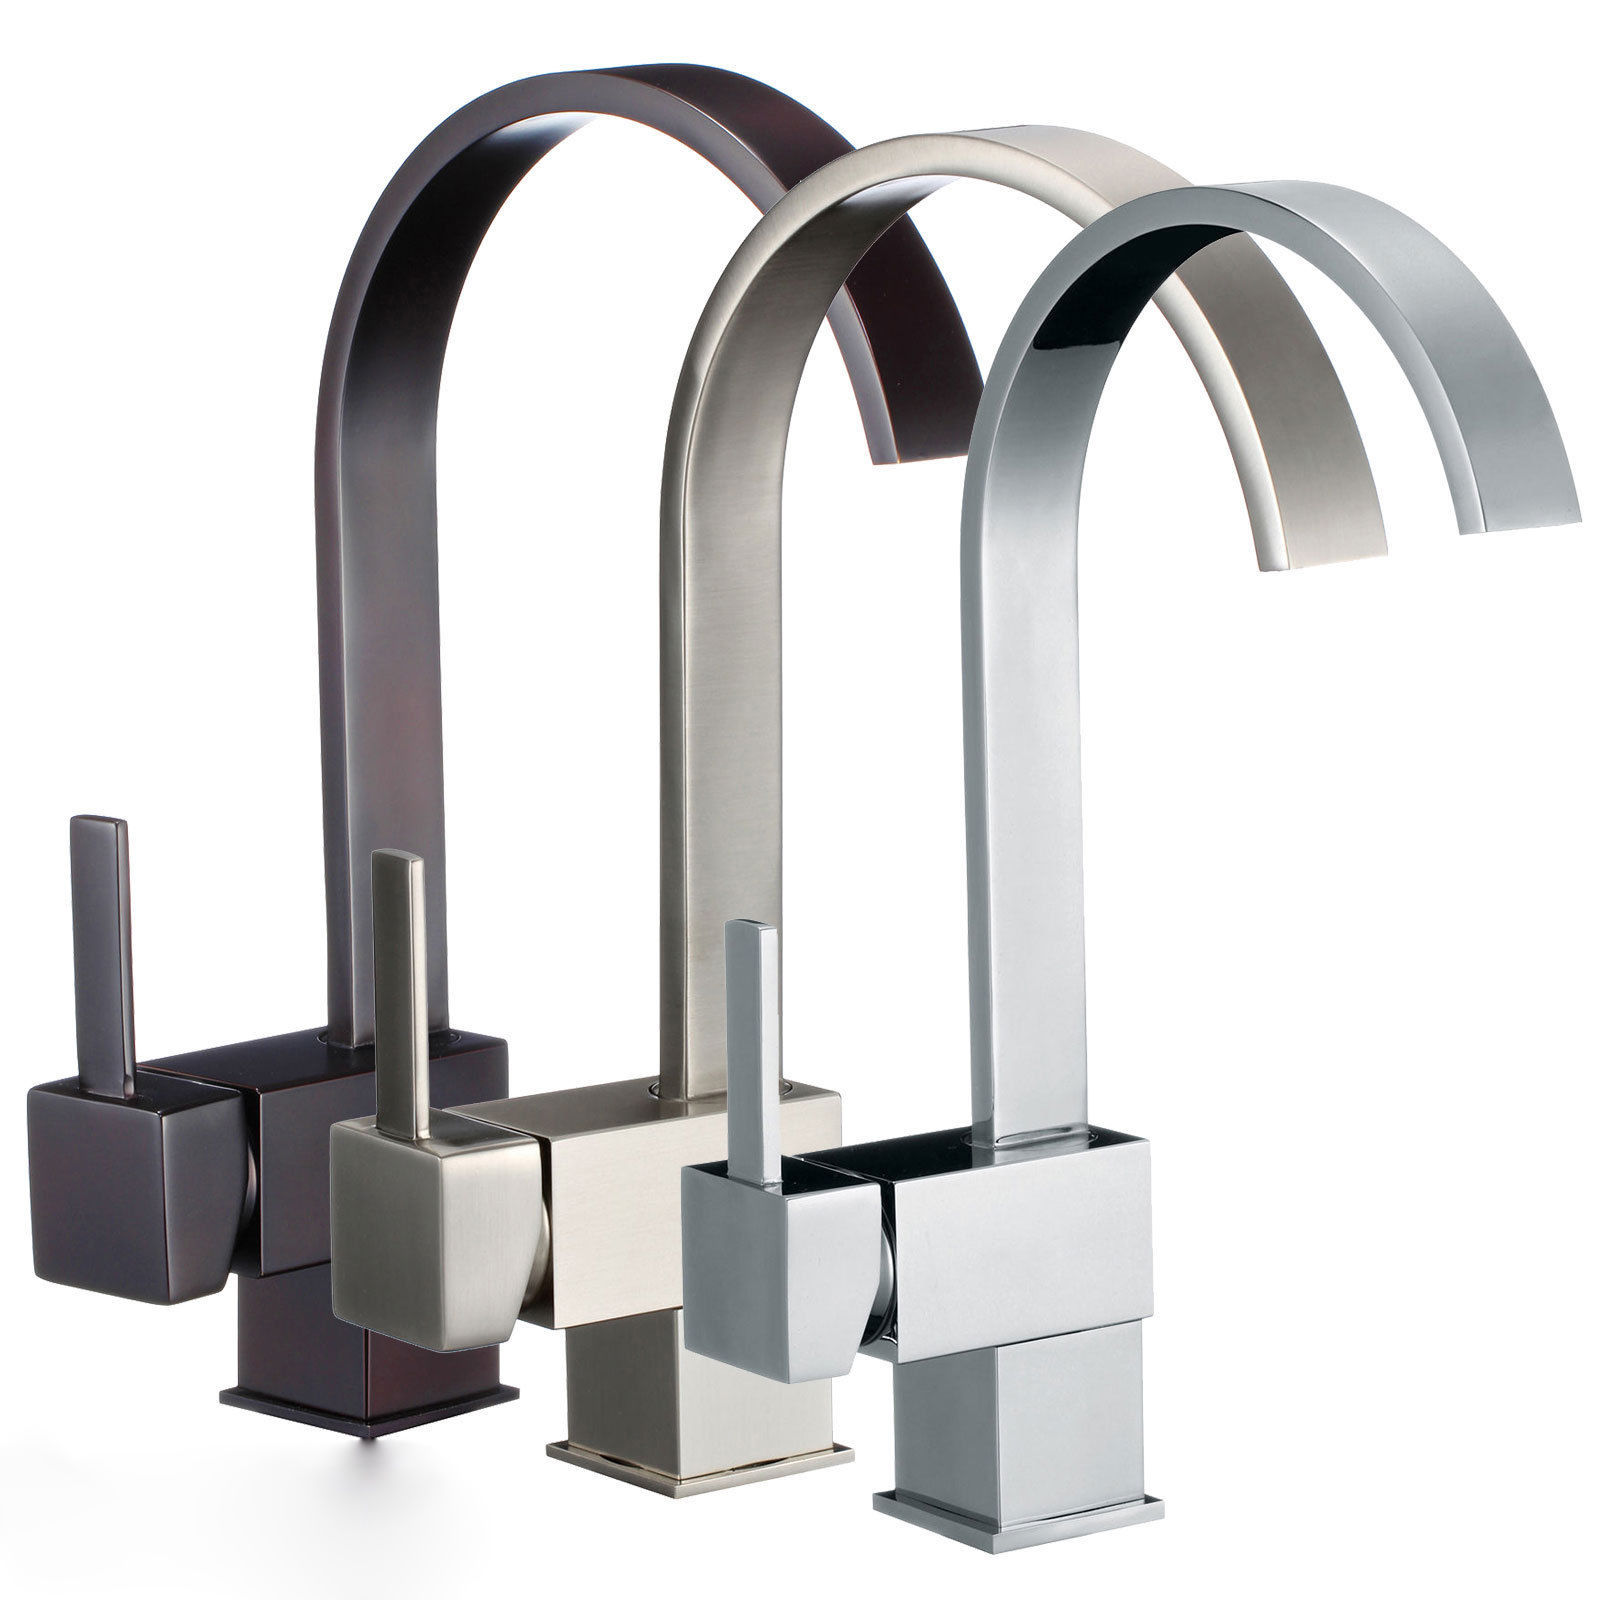 Single Handle Bathroom Kitchen Waterfall Sink Faucet Bronze Nickel Brushed Polished Chrome